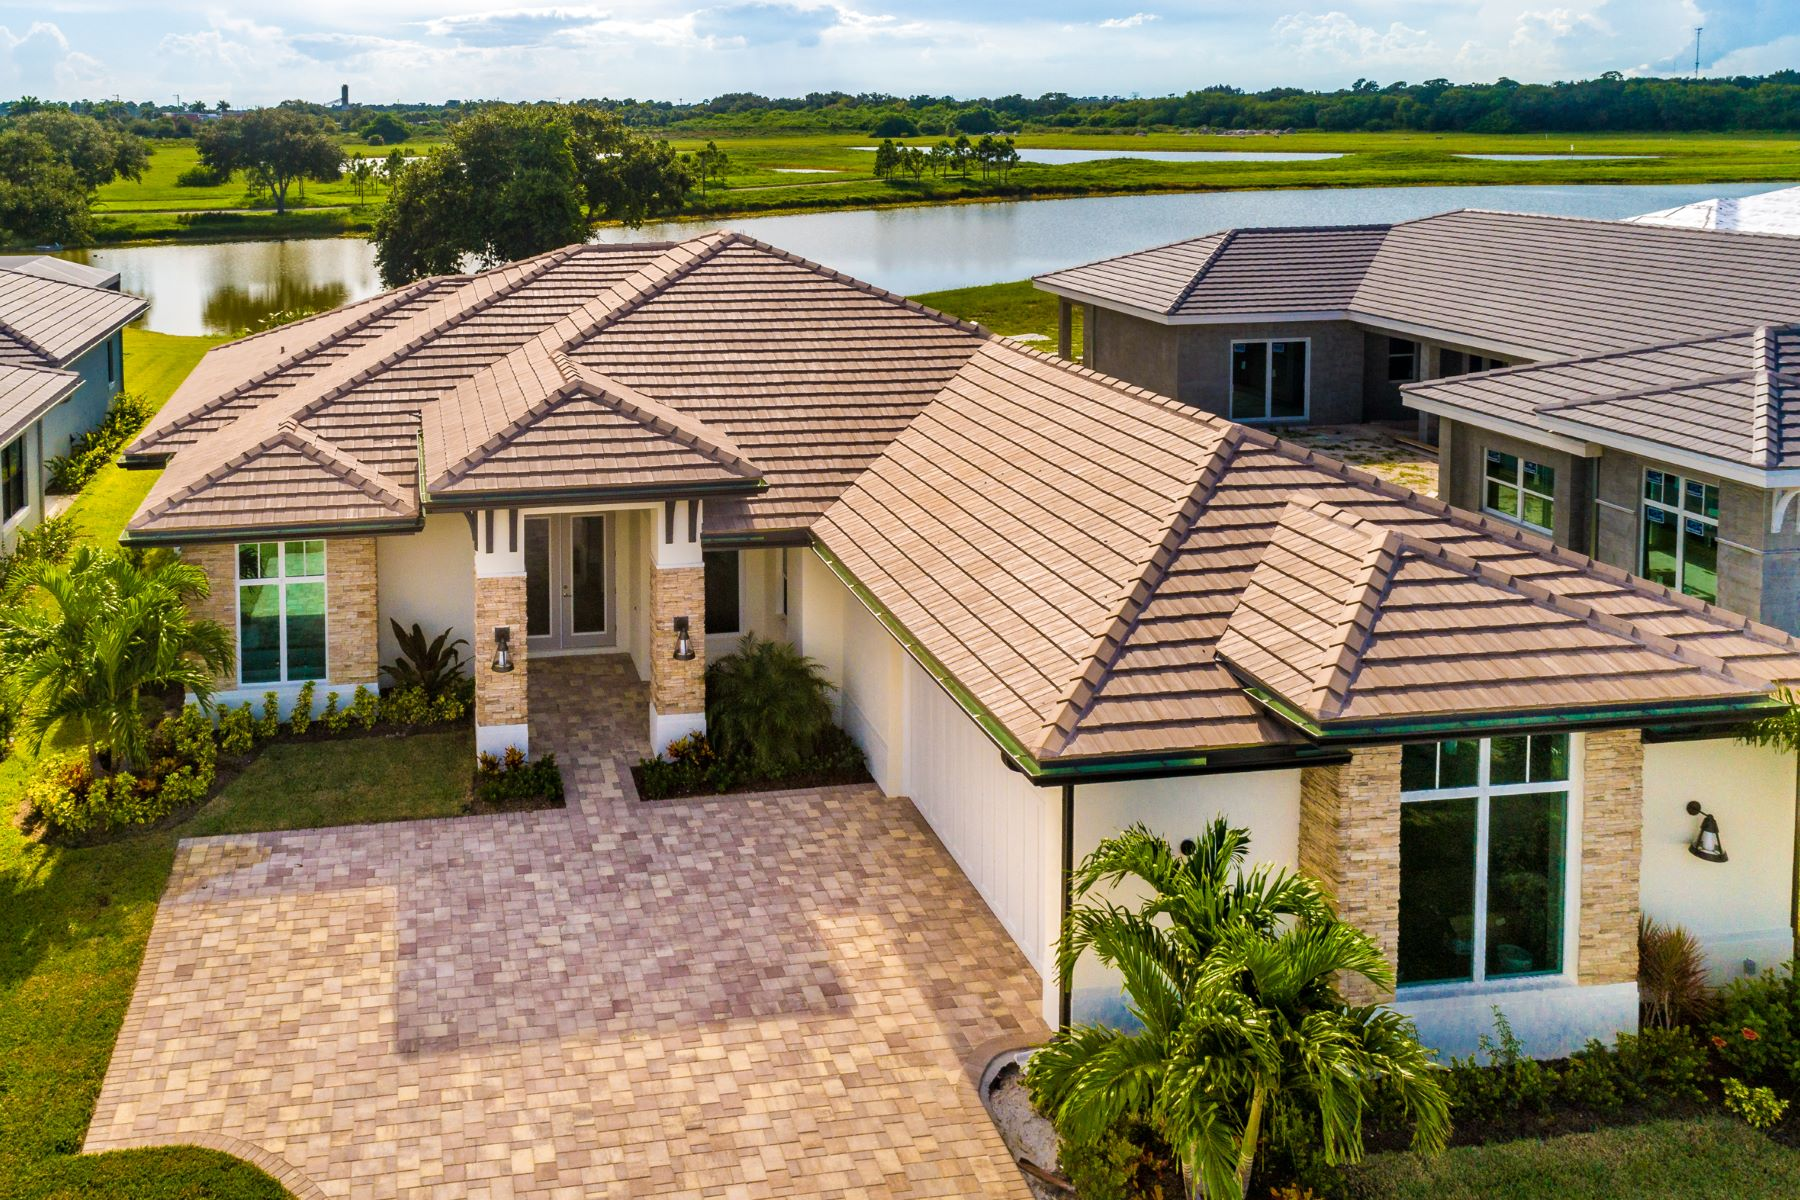 Single Family Homes for Sale at Luxury New Construction in Grand Harbor 2360 Grand Harbor Reserve Square Vero Beach, Florida 32967 United States